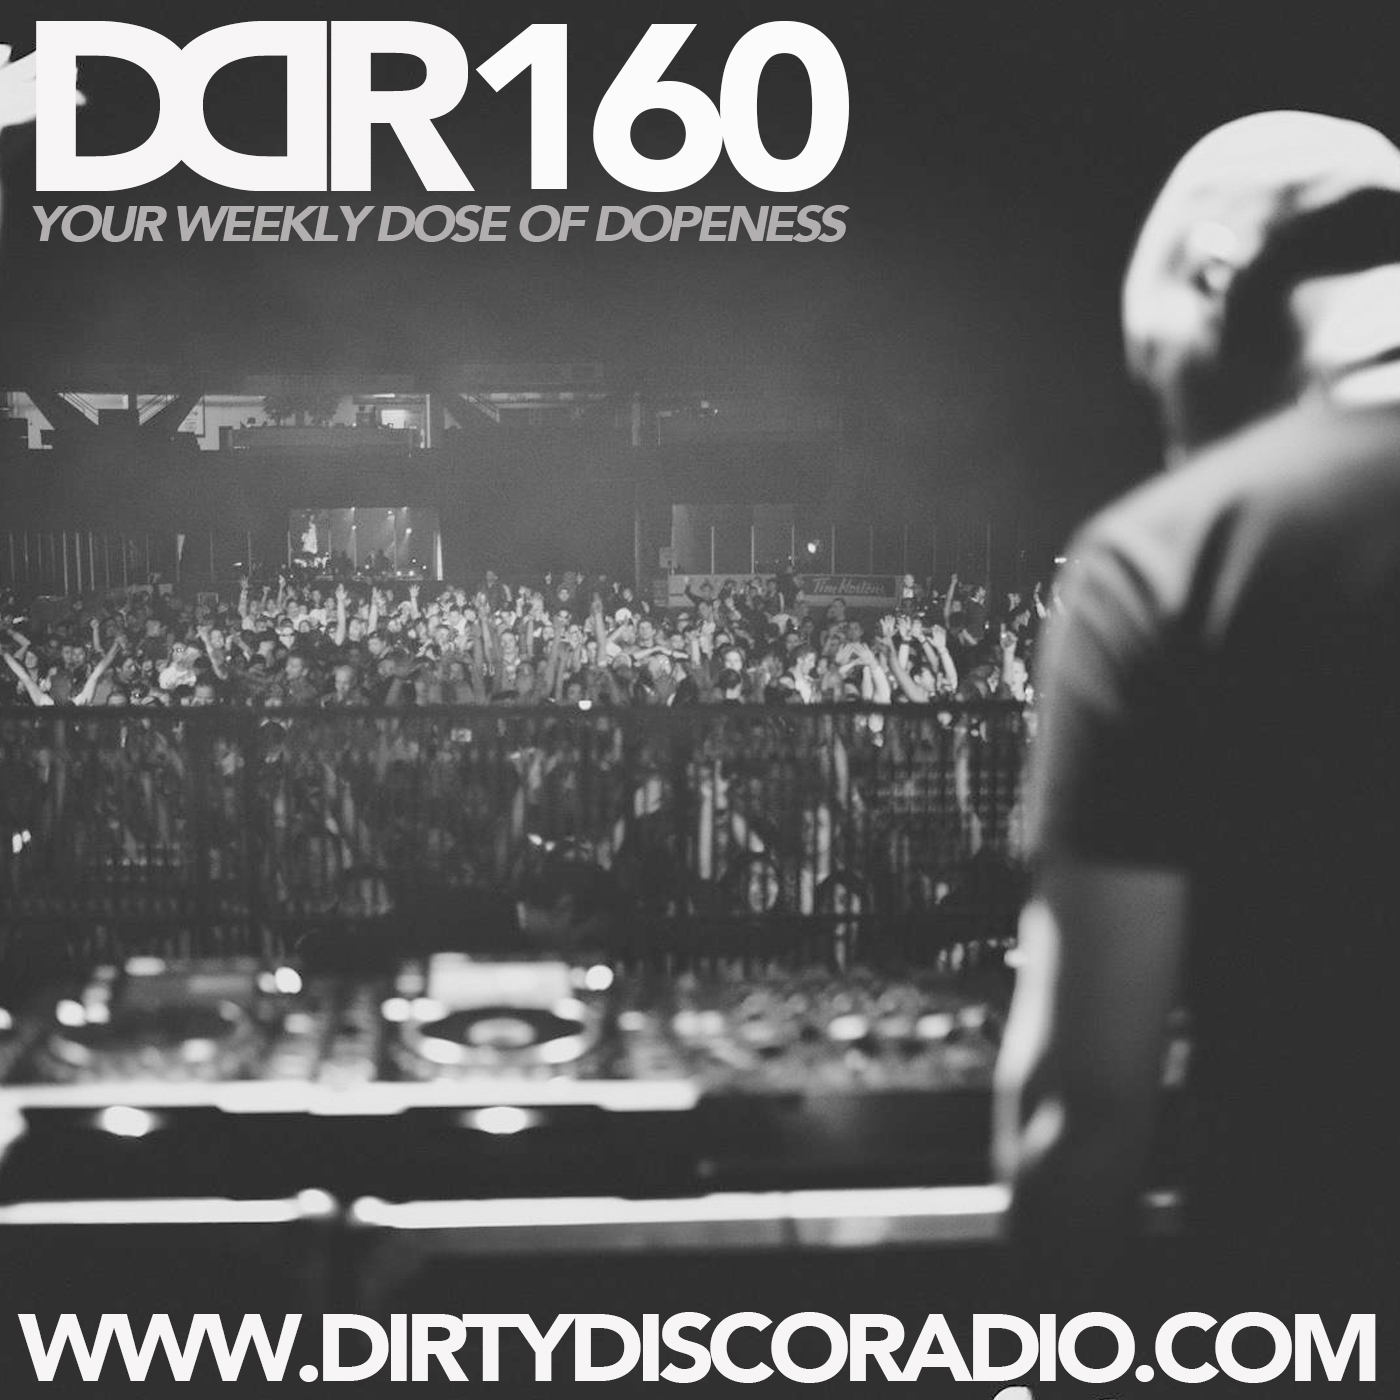 Dirty Disco radio 160